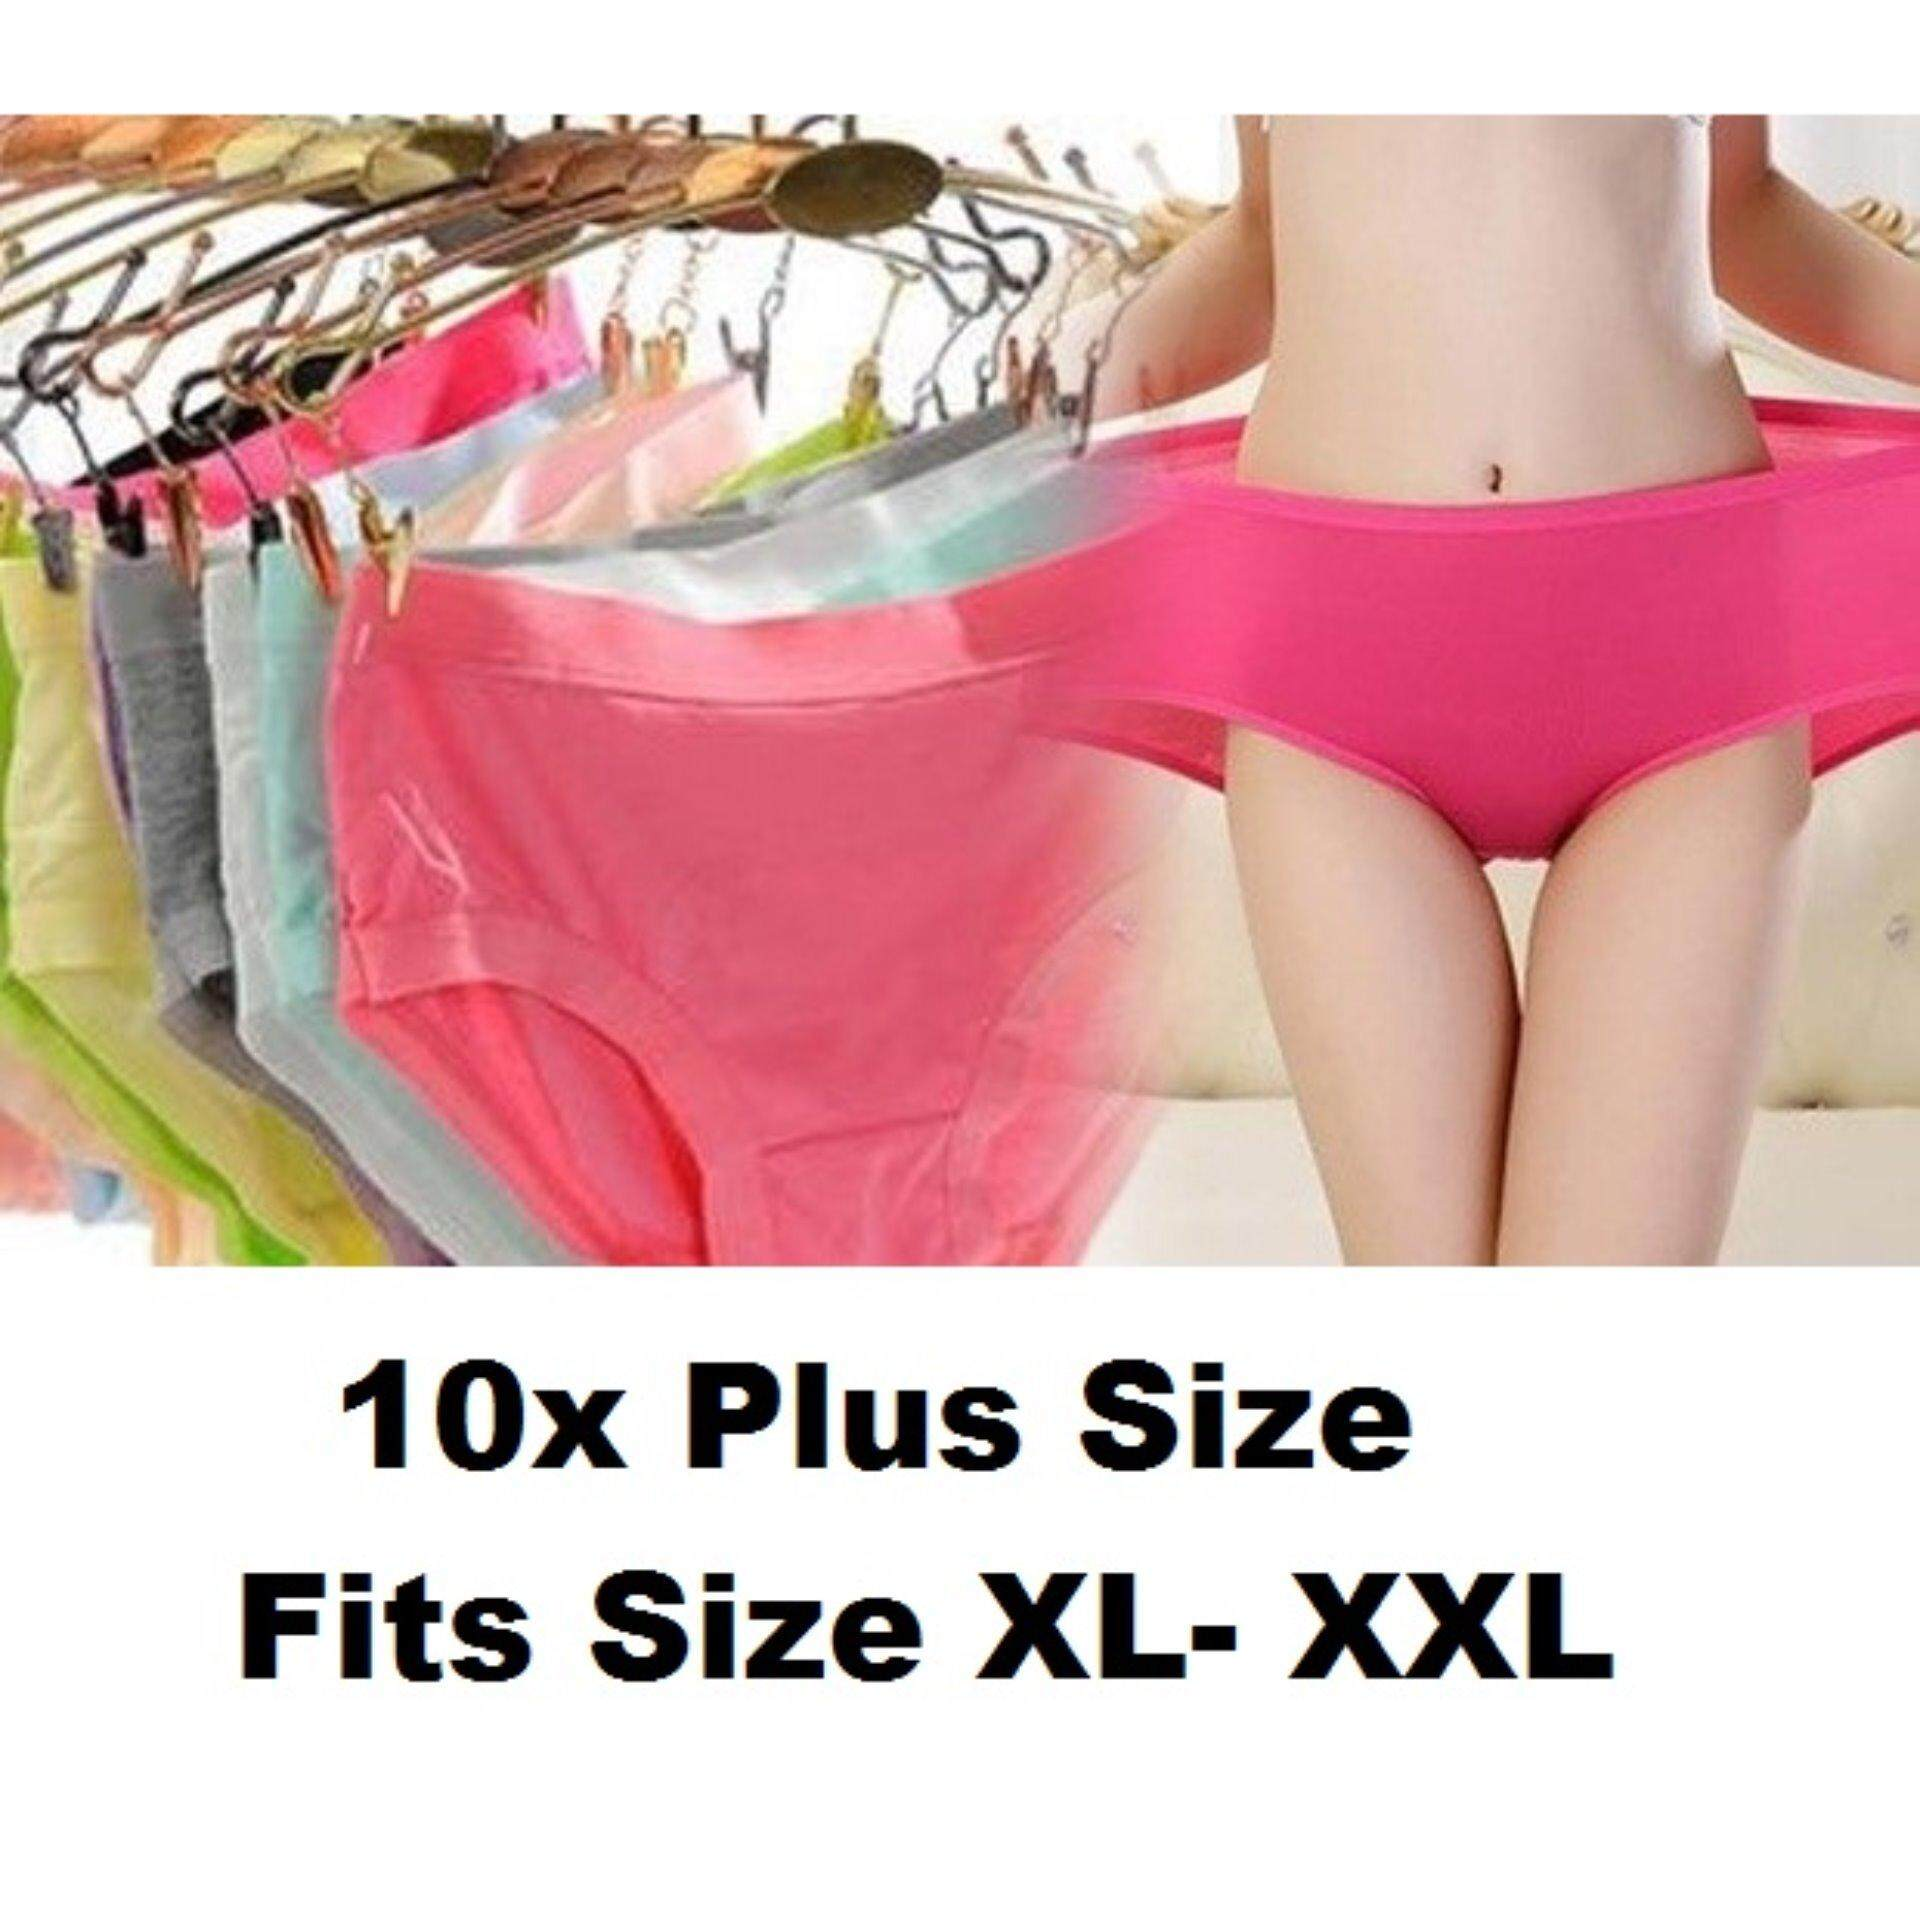 10x PLUS SIZE (XL-XXL) Super Stretchable Soft Bamboo Anti-odour Panties Underwear - 100% Lowest in Malaysia - FREE SHIPPING- Clearance Below Cost